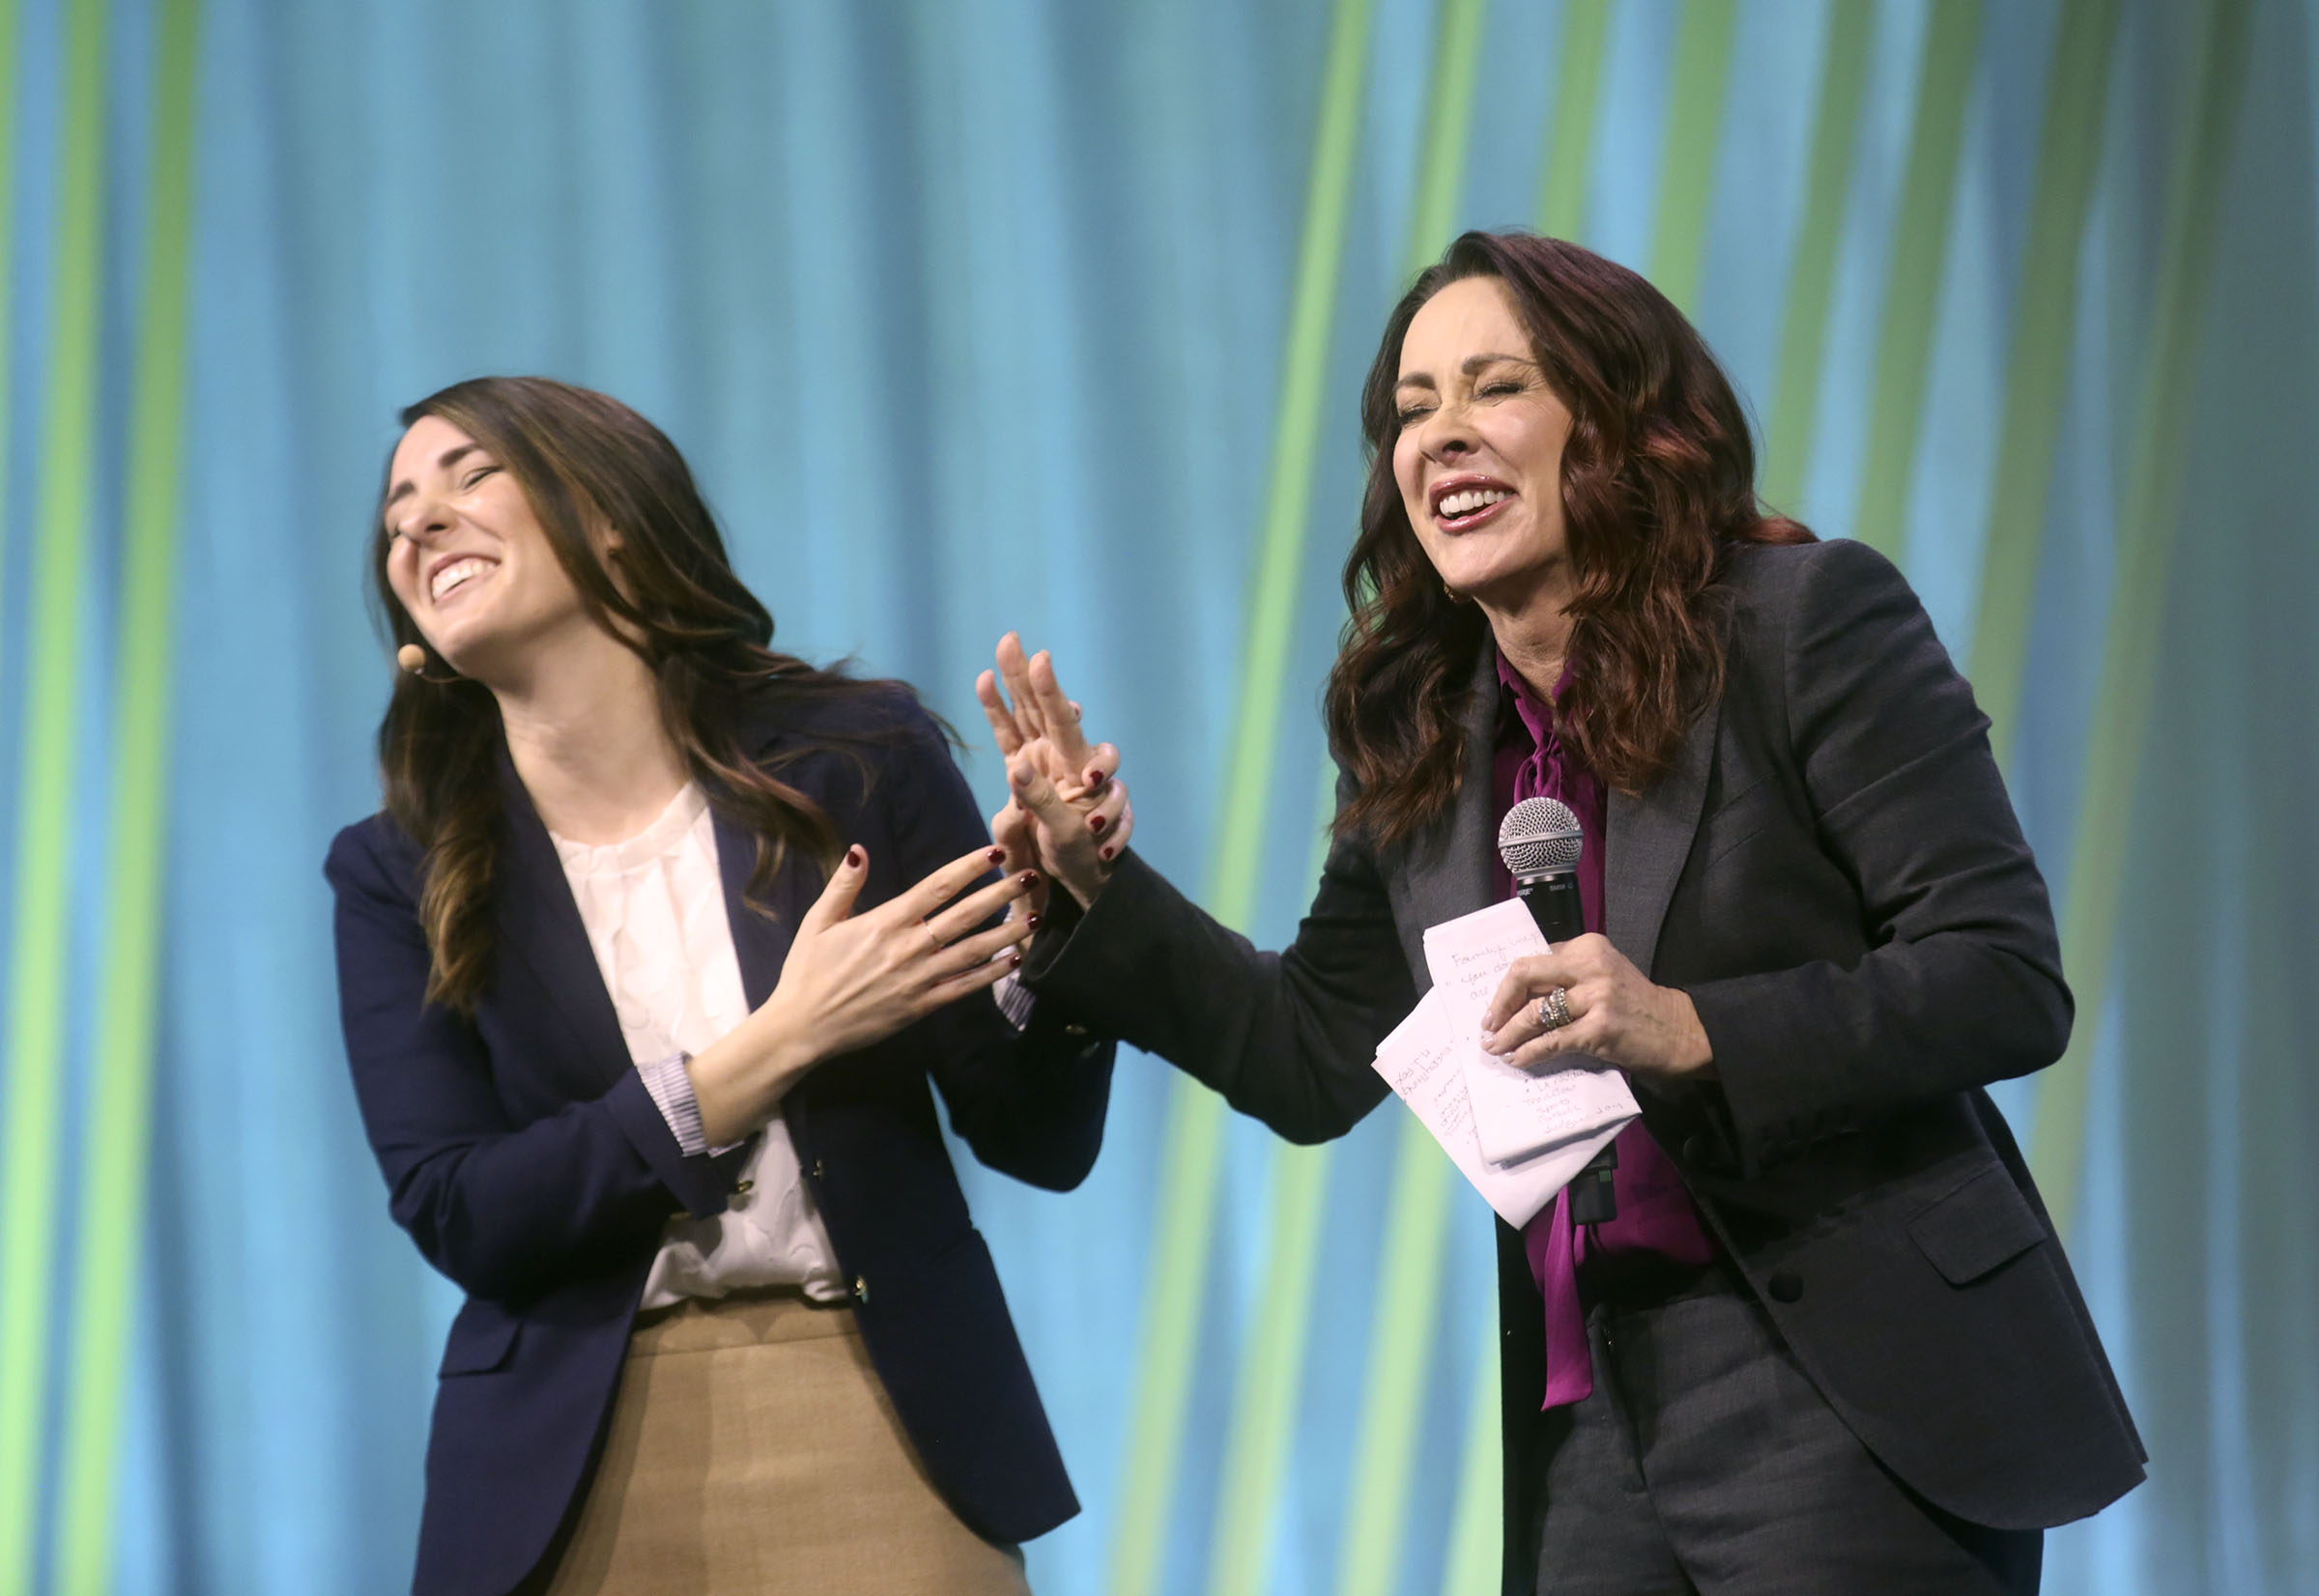 Actress Patricia Heaton, right, reacts as Whitney Peterson, Family Search UK records specialist, reveals some of Heaton's family history during RootsTech at the Salt Palace Convention Center in Salt Lake City on Feb. 28, 2019.